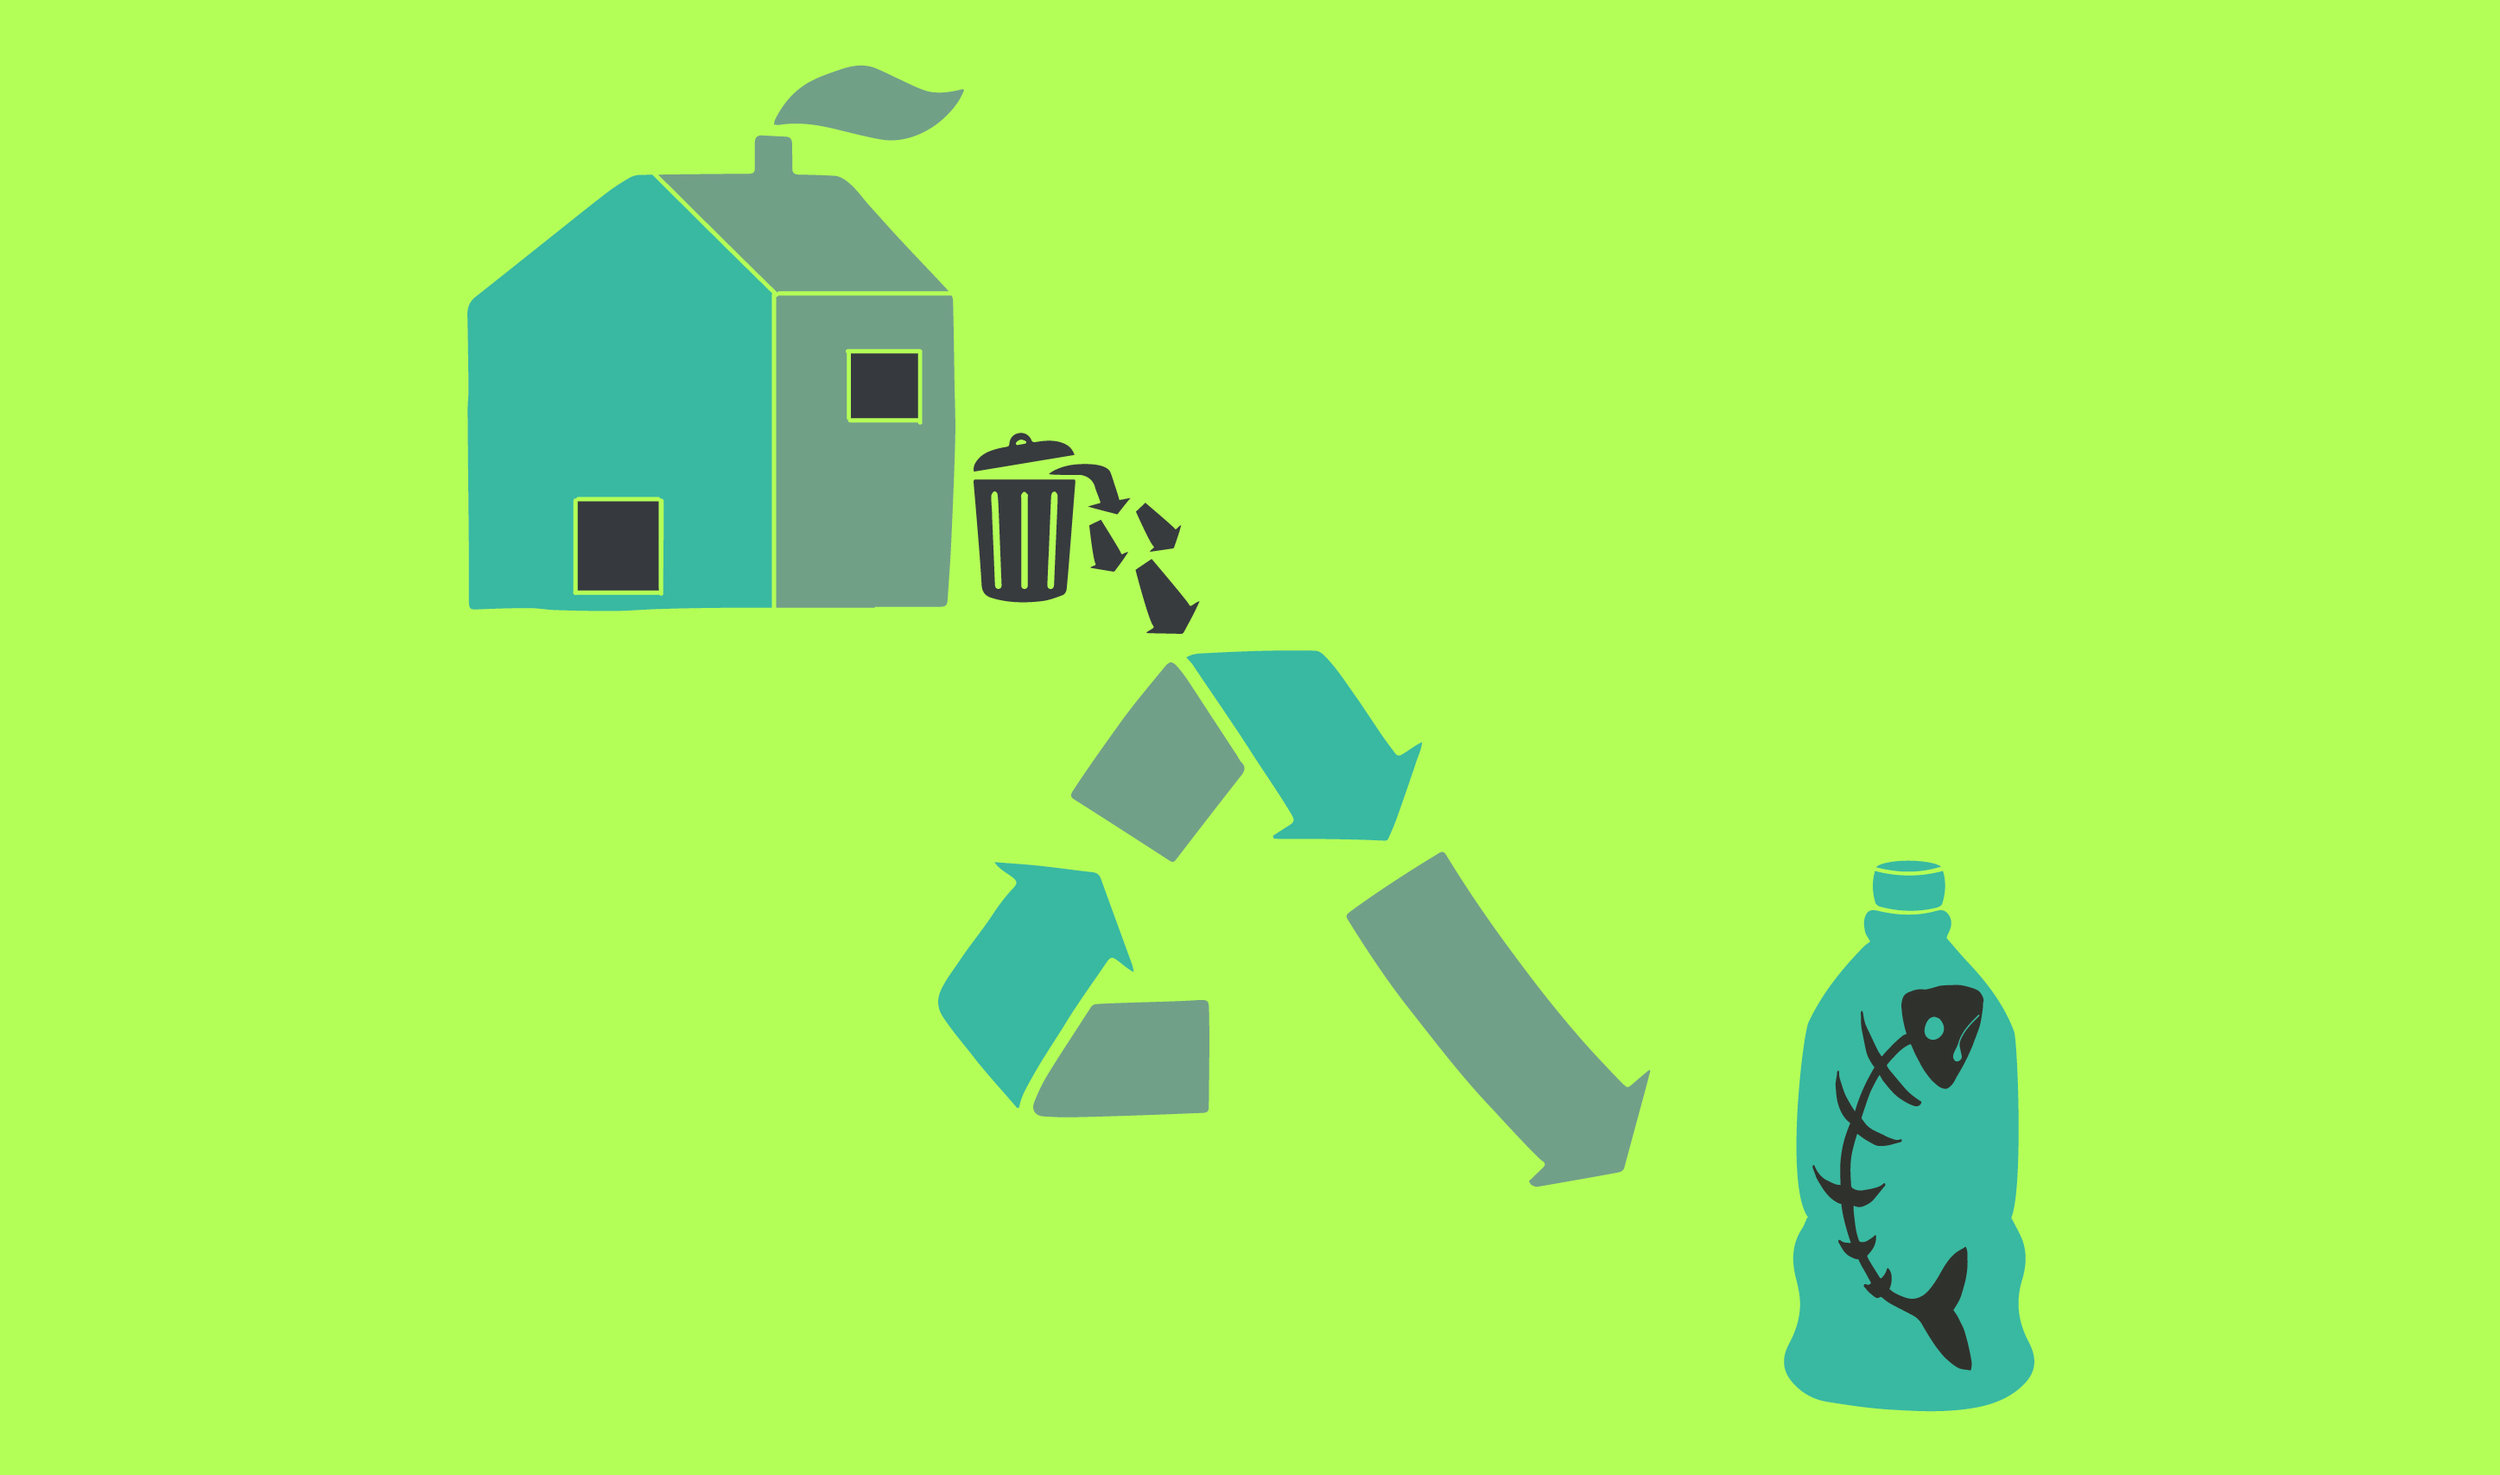 Let's Talk Trash - Composting? It can be intimidating but we are here to help you with...